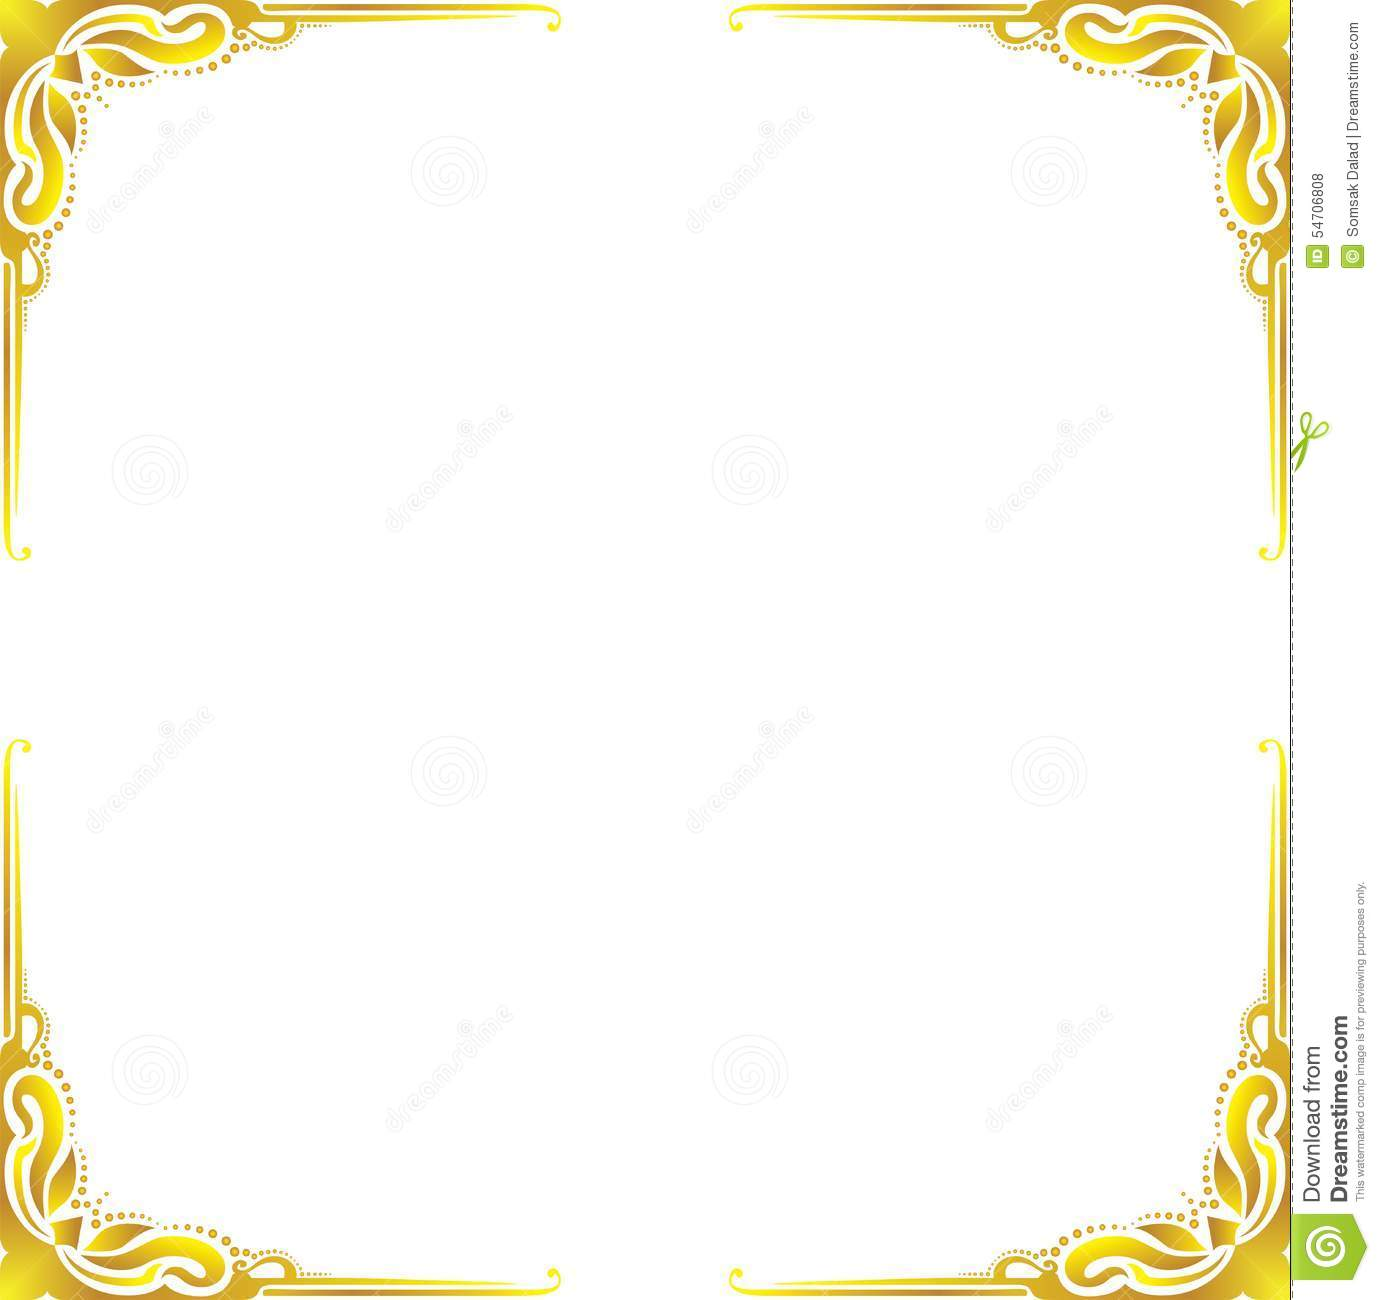 Gold Border Designs Clip Art Pictures to Pin on Pinterest ...